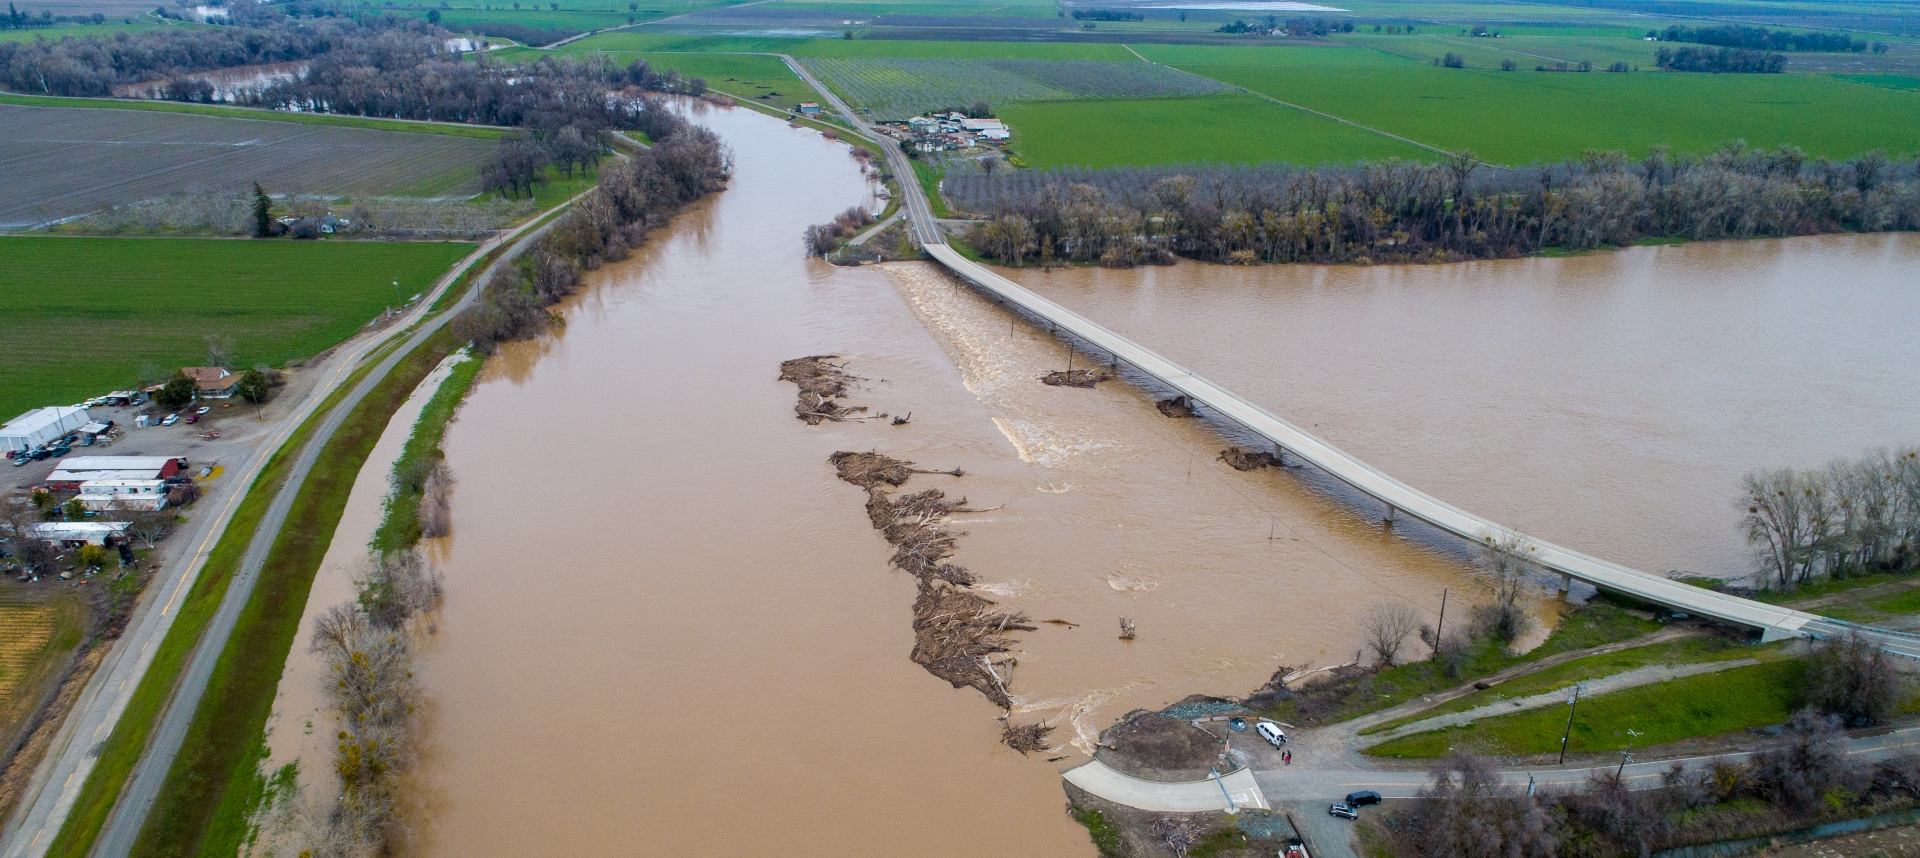 Sacramento River flooded into farmlands and highway